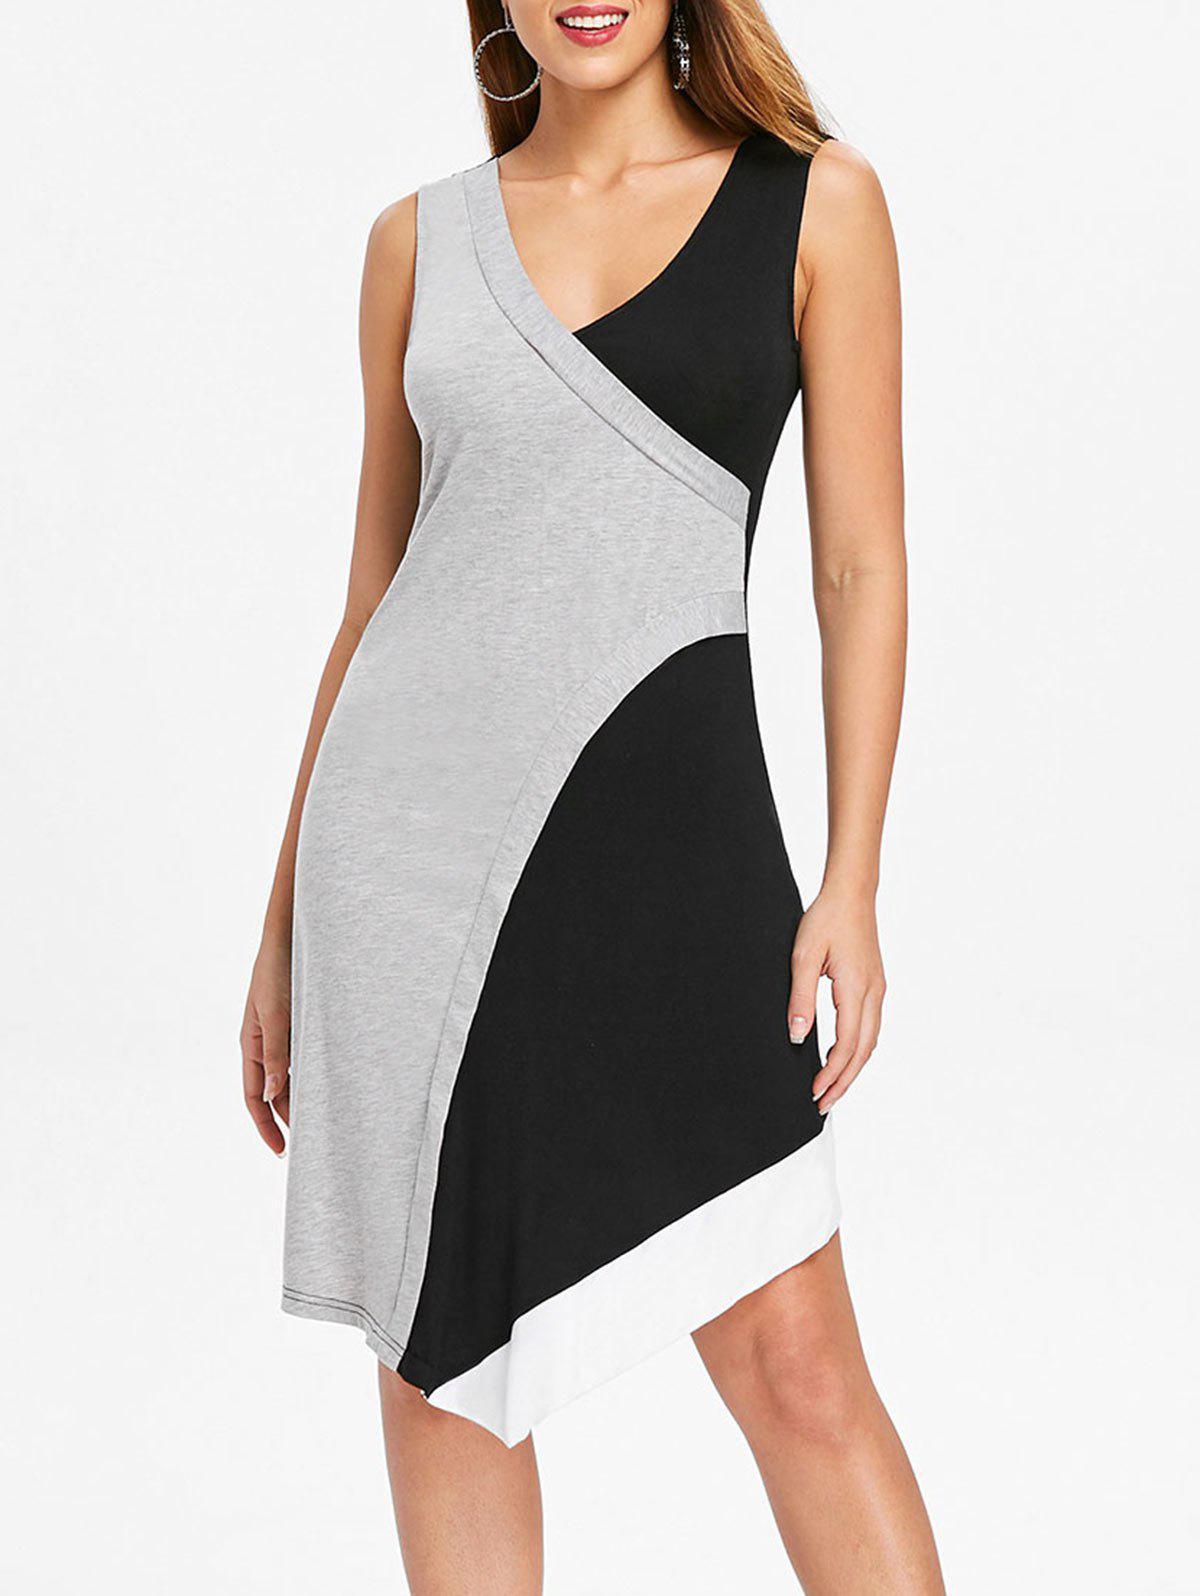 Trendy Asymmetric Color Block Overlap Dress